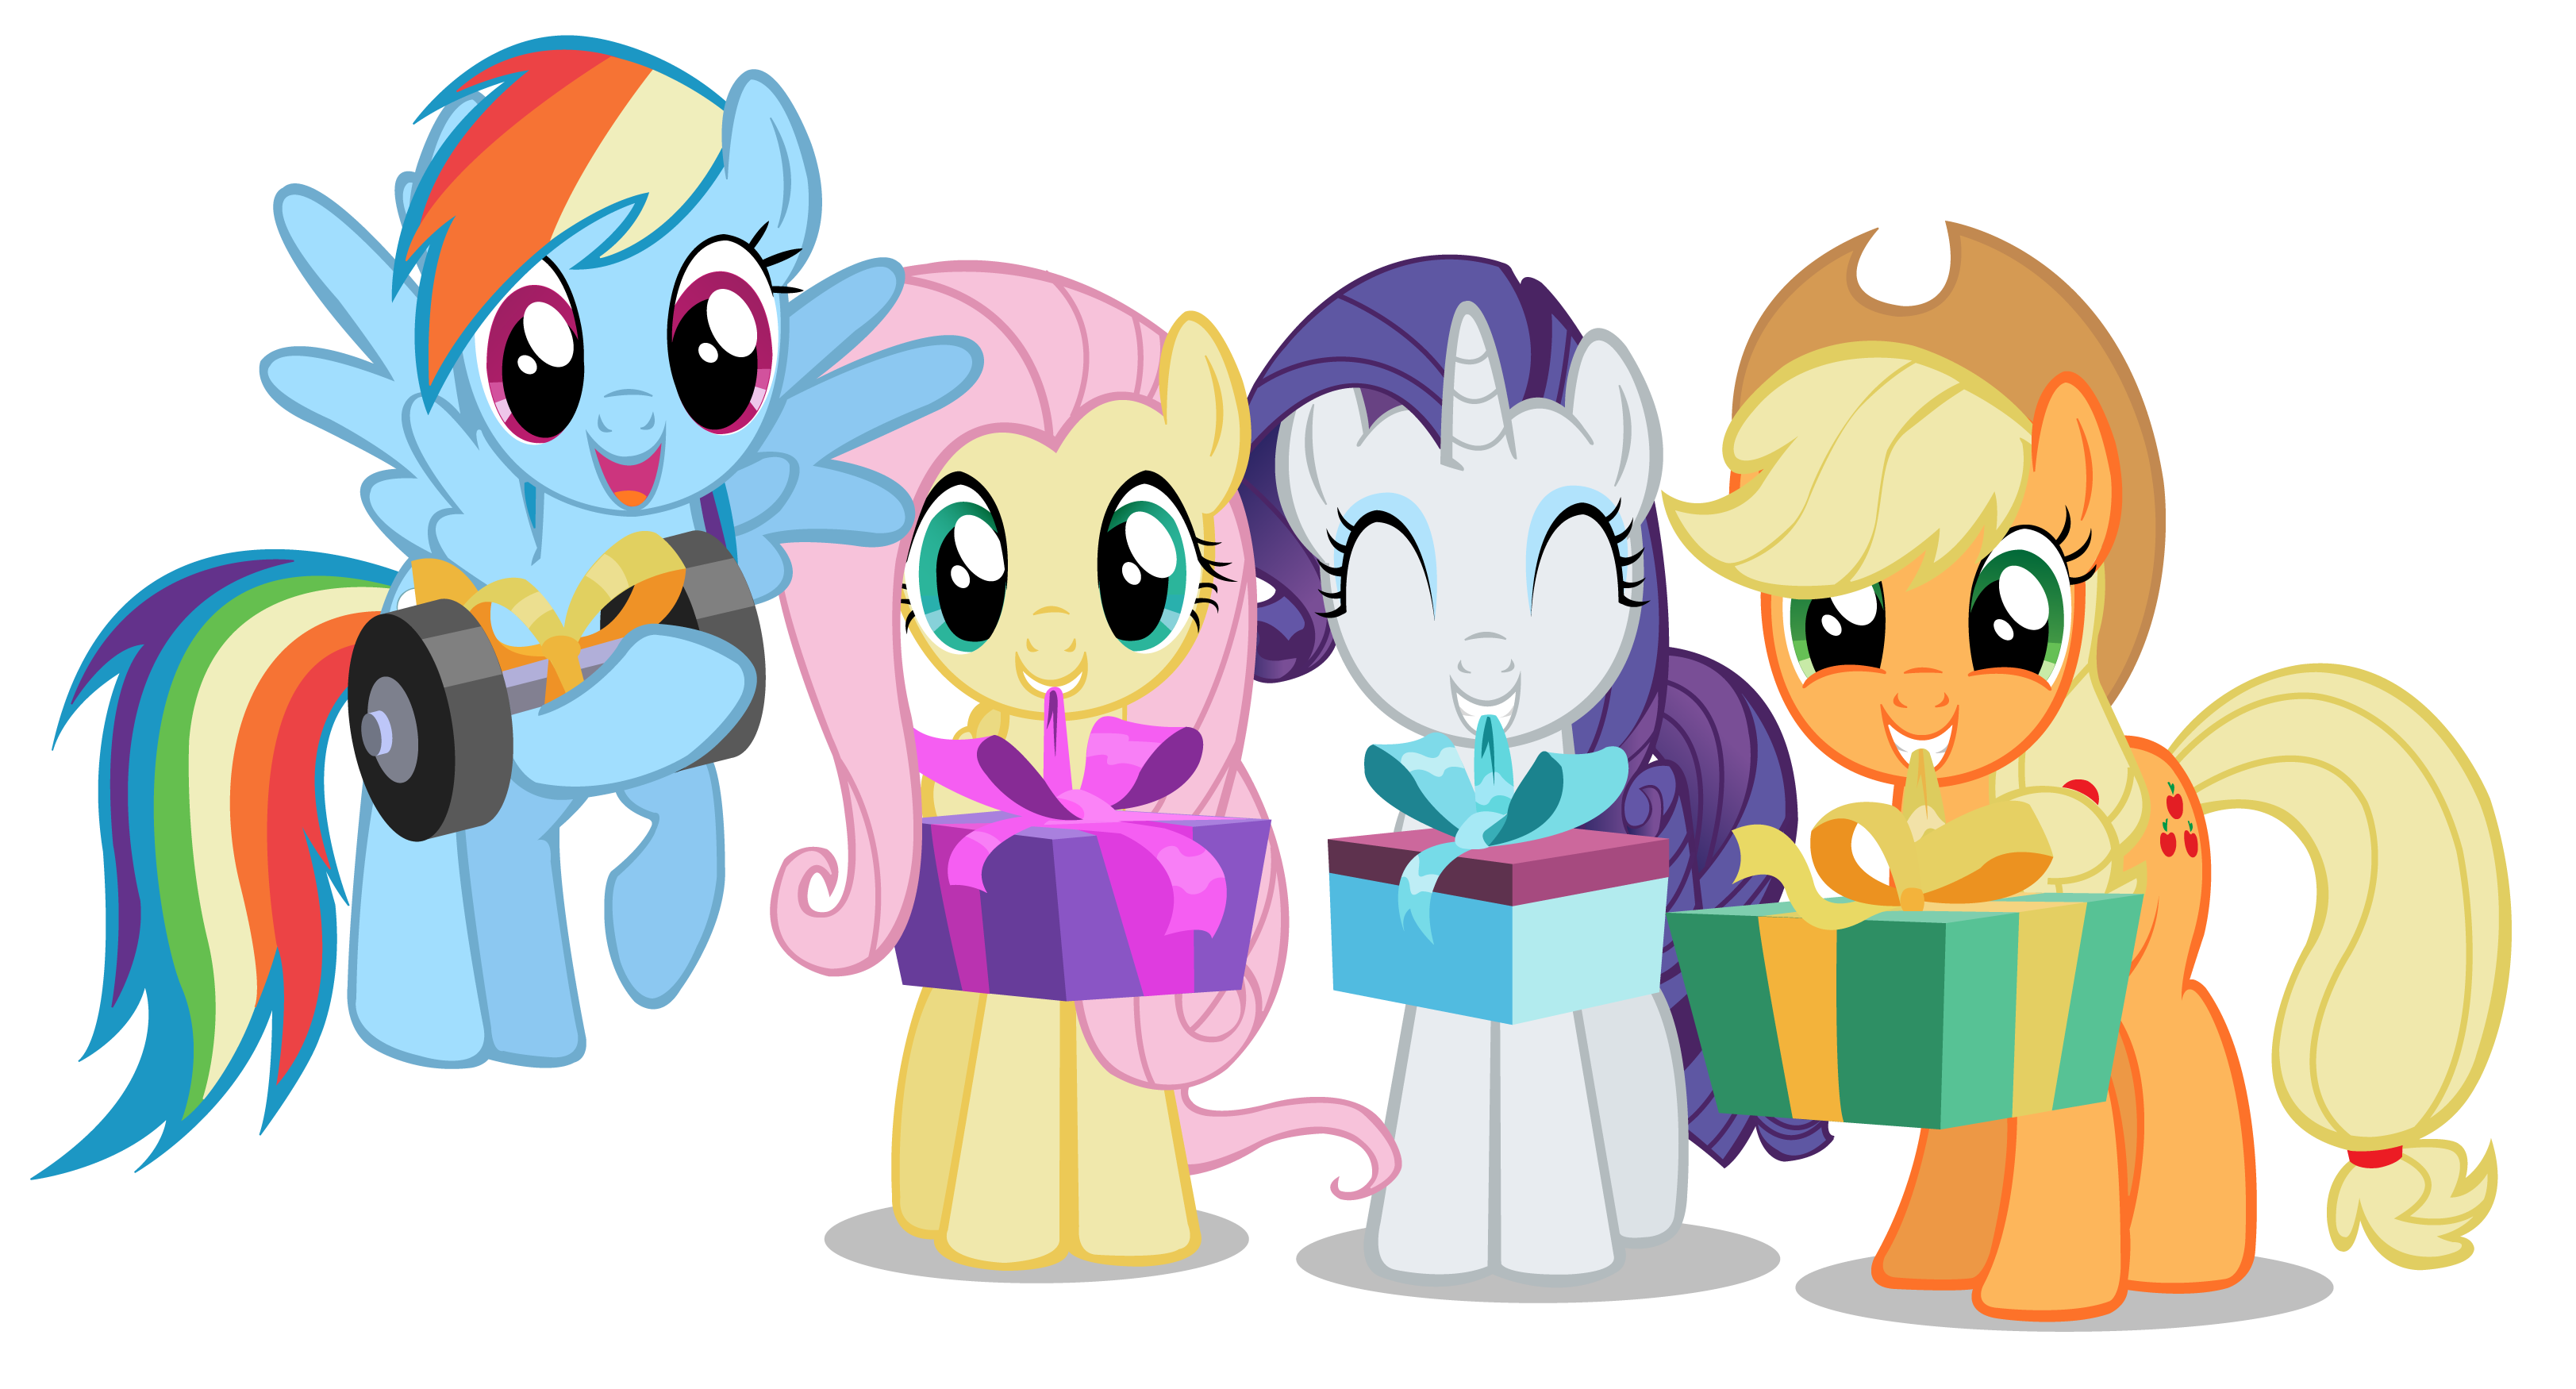 Free Little Pony Cliparts, Download Free Clip Art, Free Clip Art on ... svg download